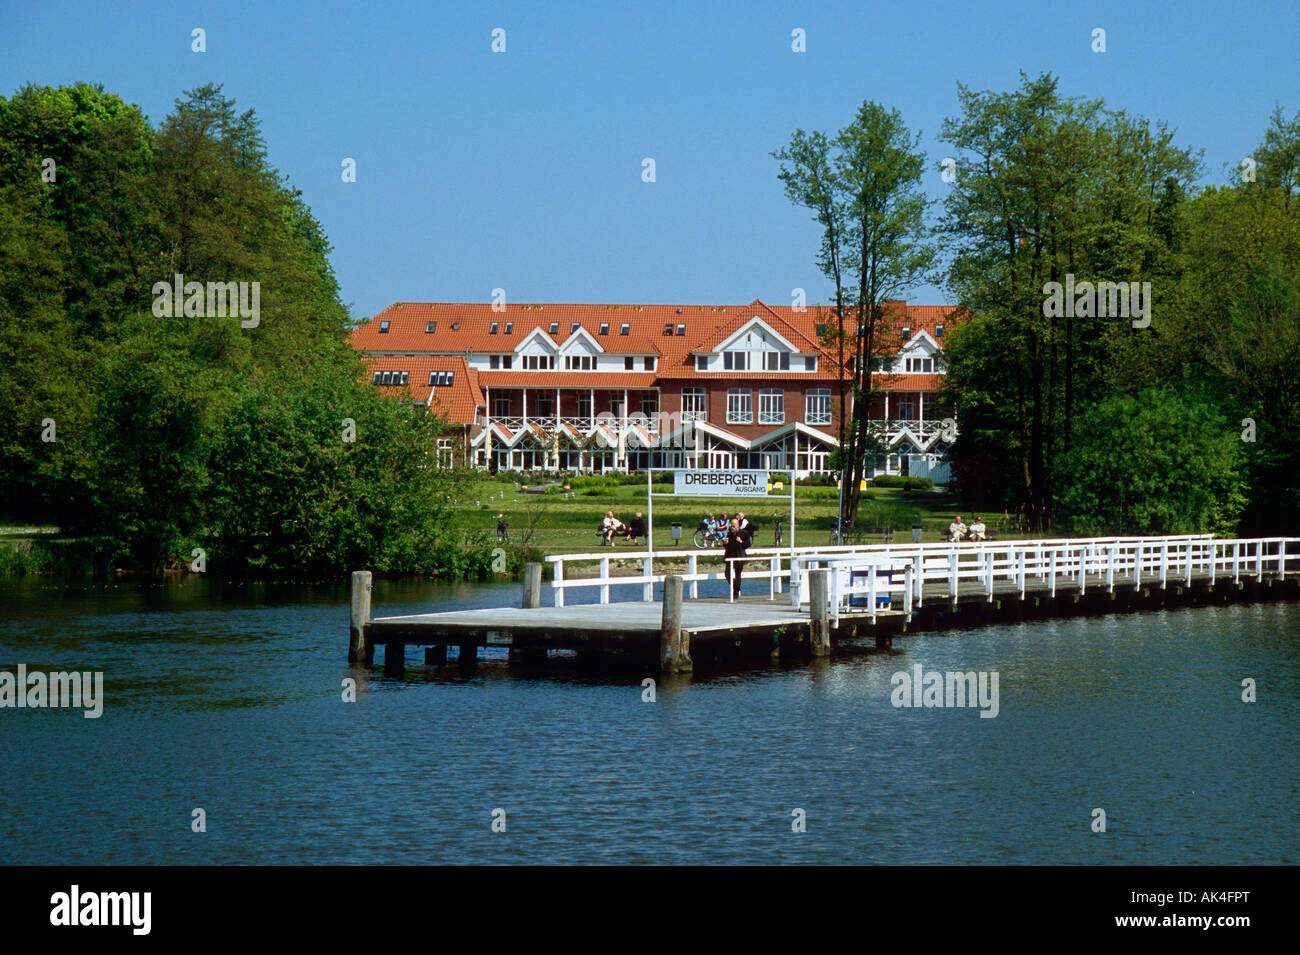 Bad Zwischenahn Hotel Hotel Bad Zwischenahn Stock Photo 14882495 Alamy